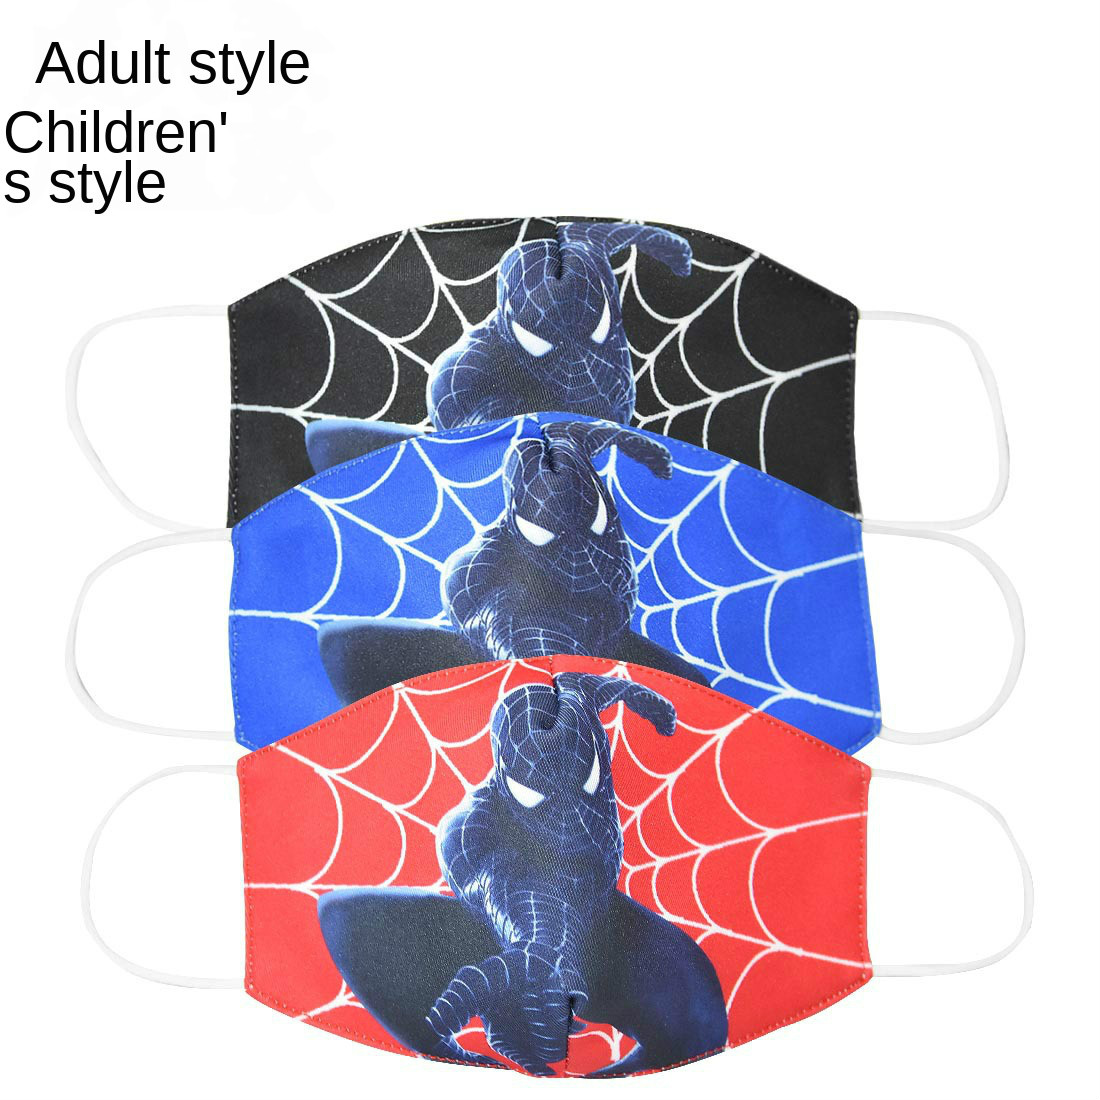 2020 Spiderman Half Muffle Face Mask Adult Kids Cottons Dustproof Cartoon Woman Men Mouth Masks Mouth For Birthday Gift